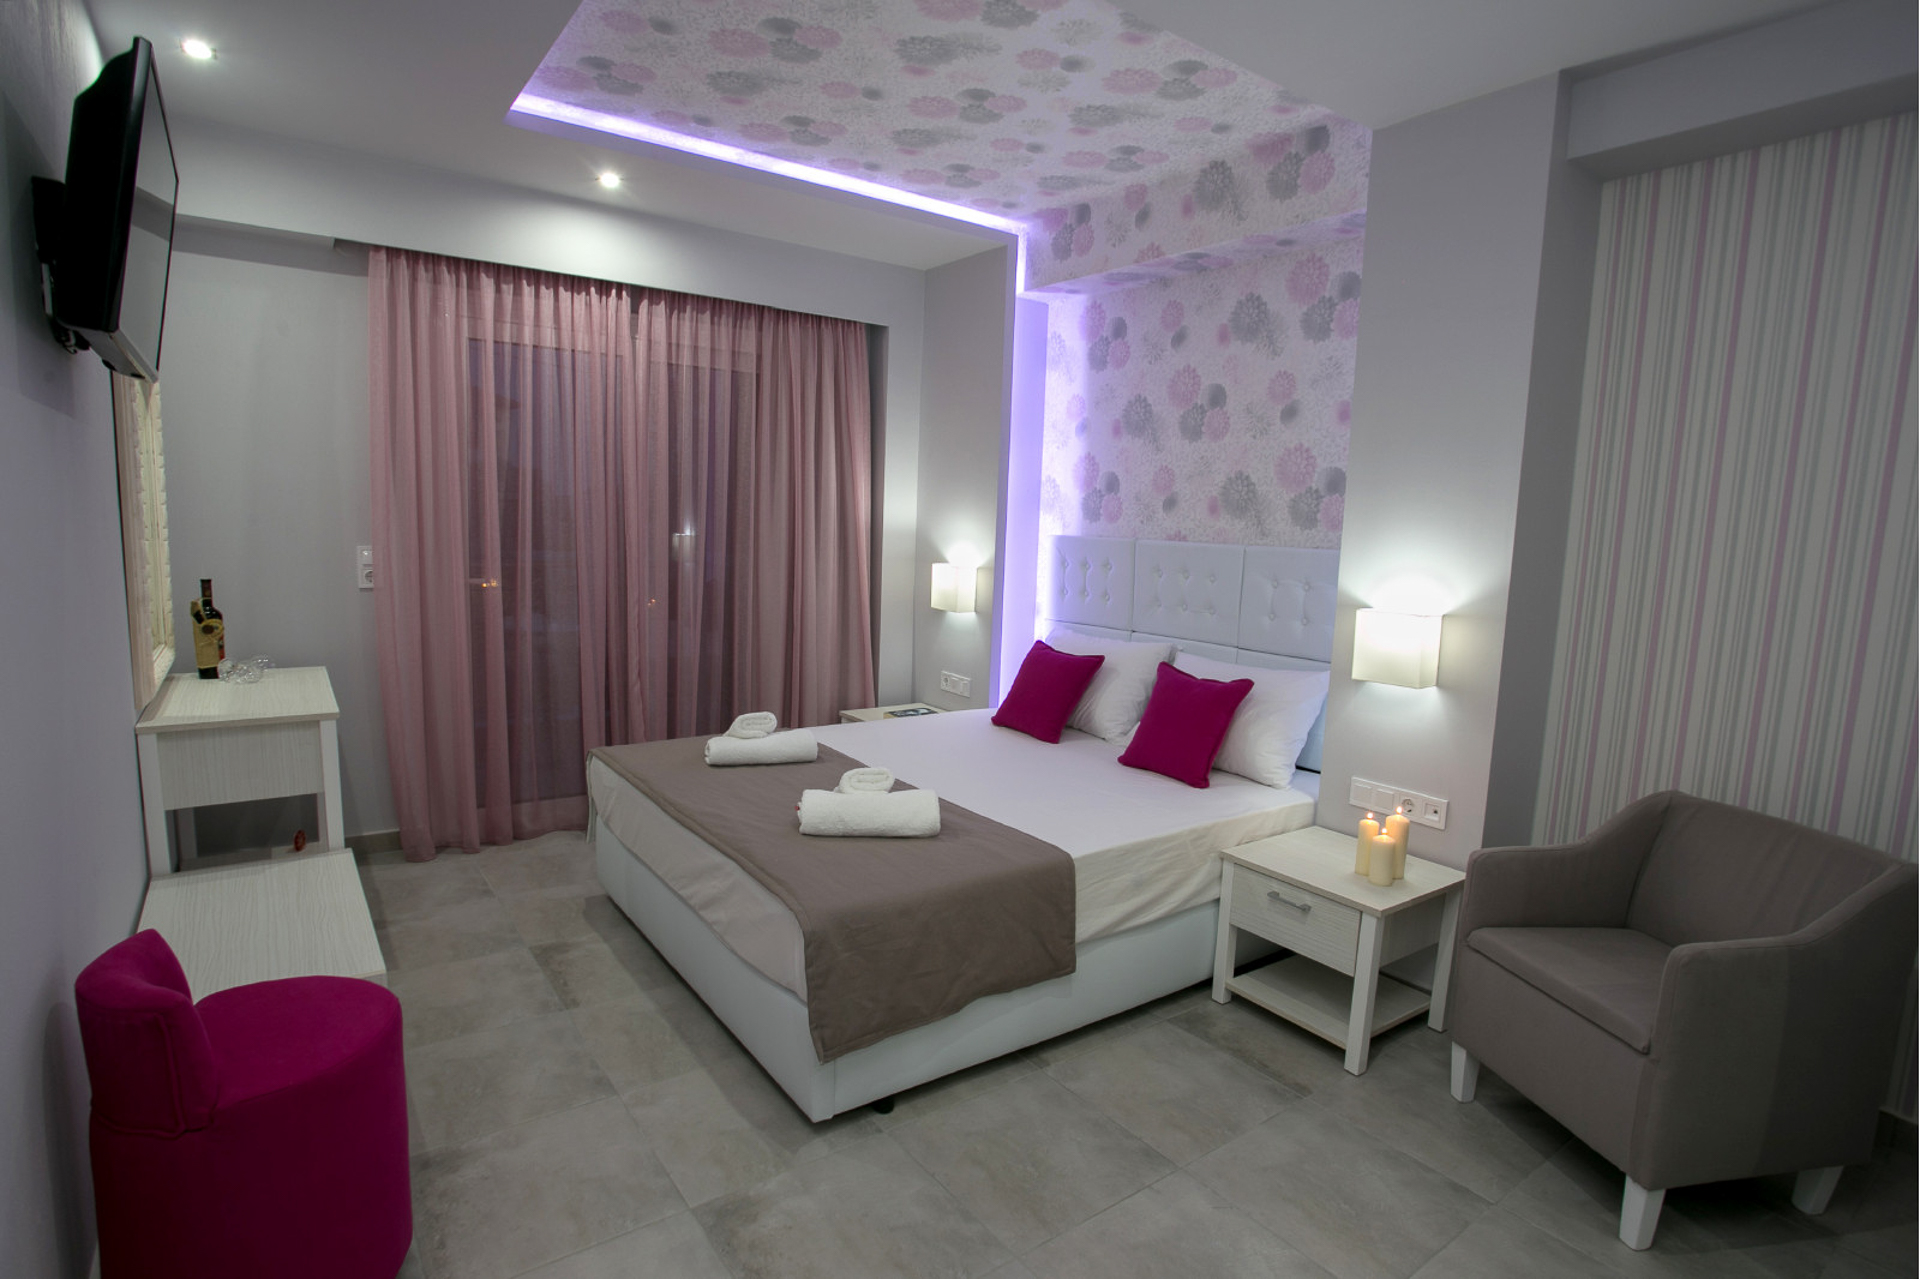 la feyra luxury rooms limenaria thassos amethyst room 2